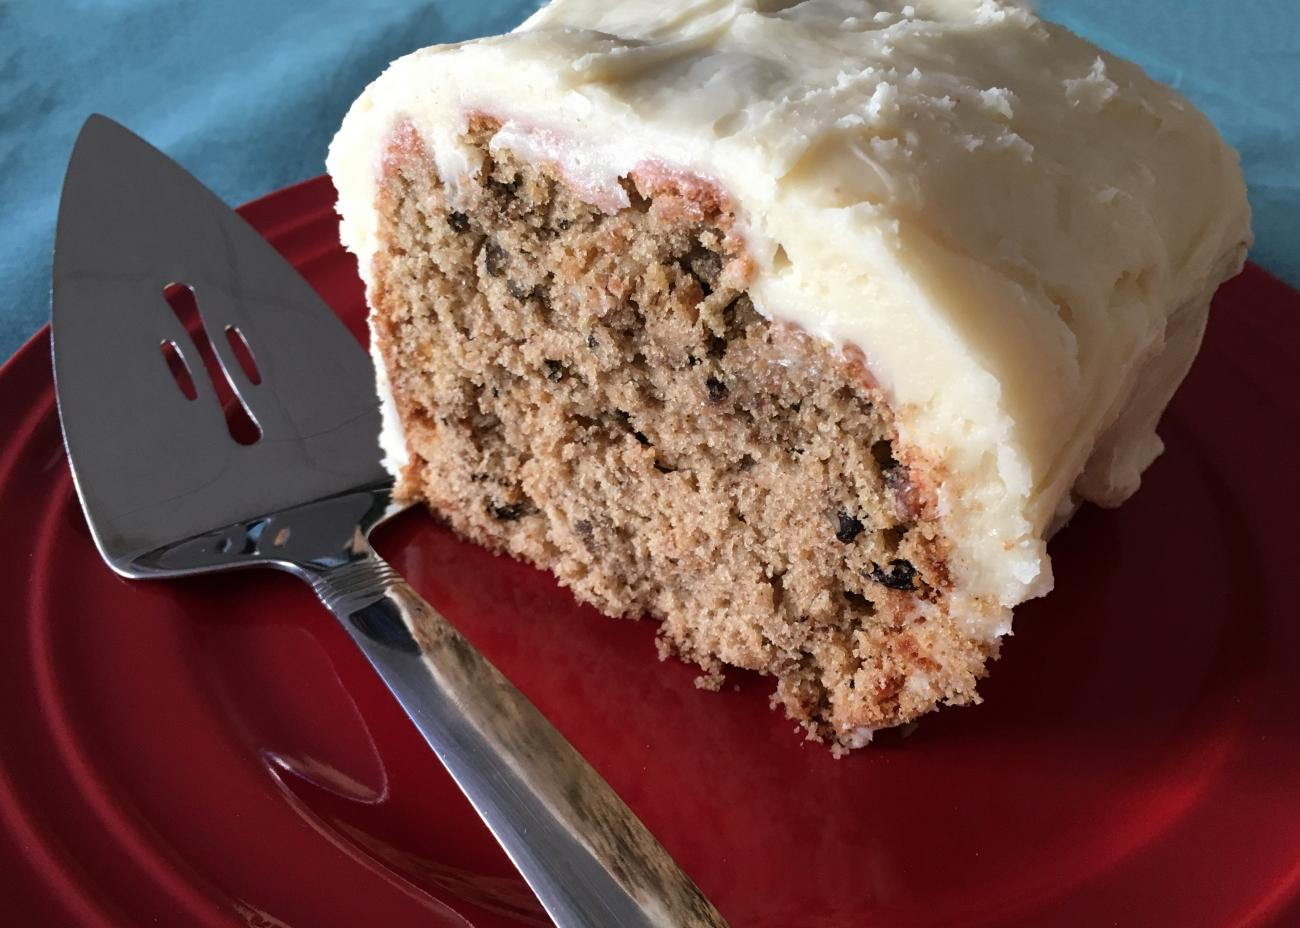 Recipe for Beet Cake with Cream Cheese Frosting